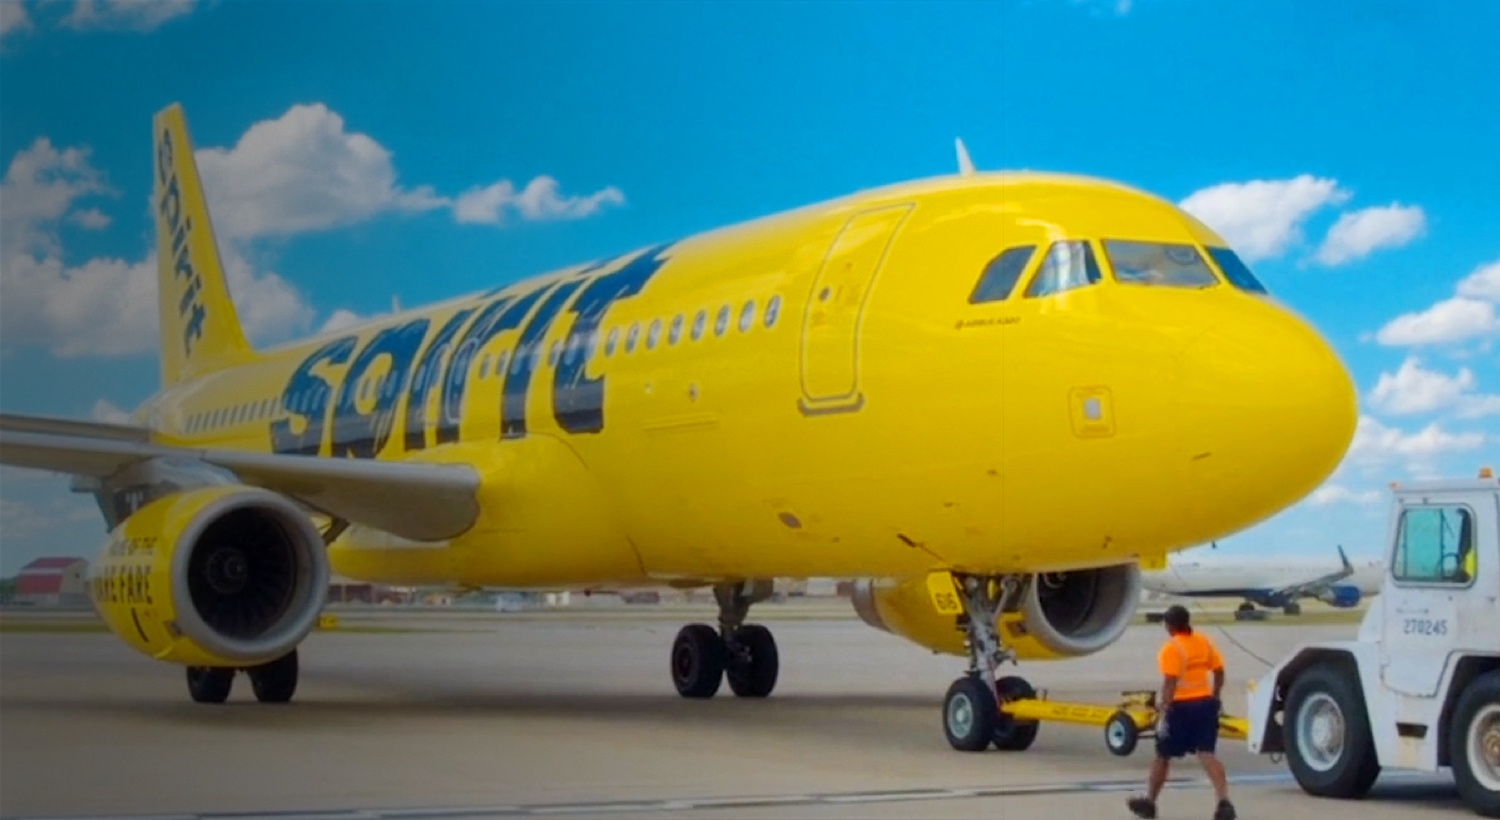 The Spirit of Innovation: How an Airline Enhances the Customer Experience